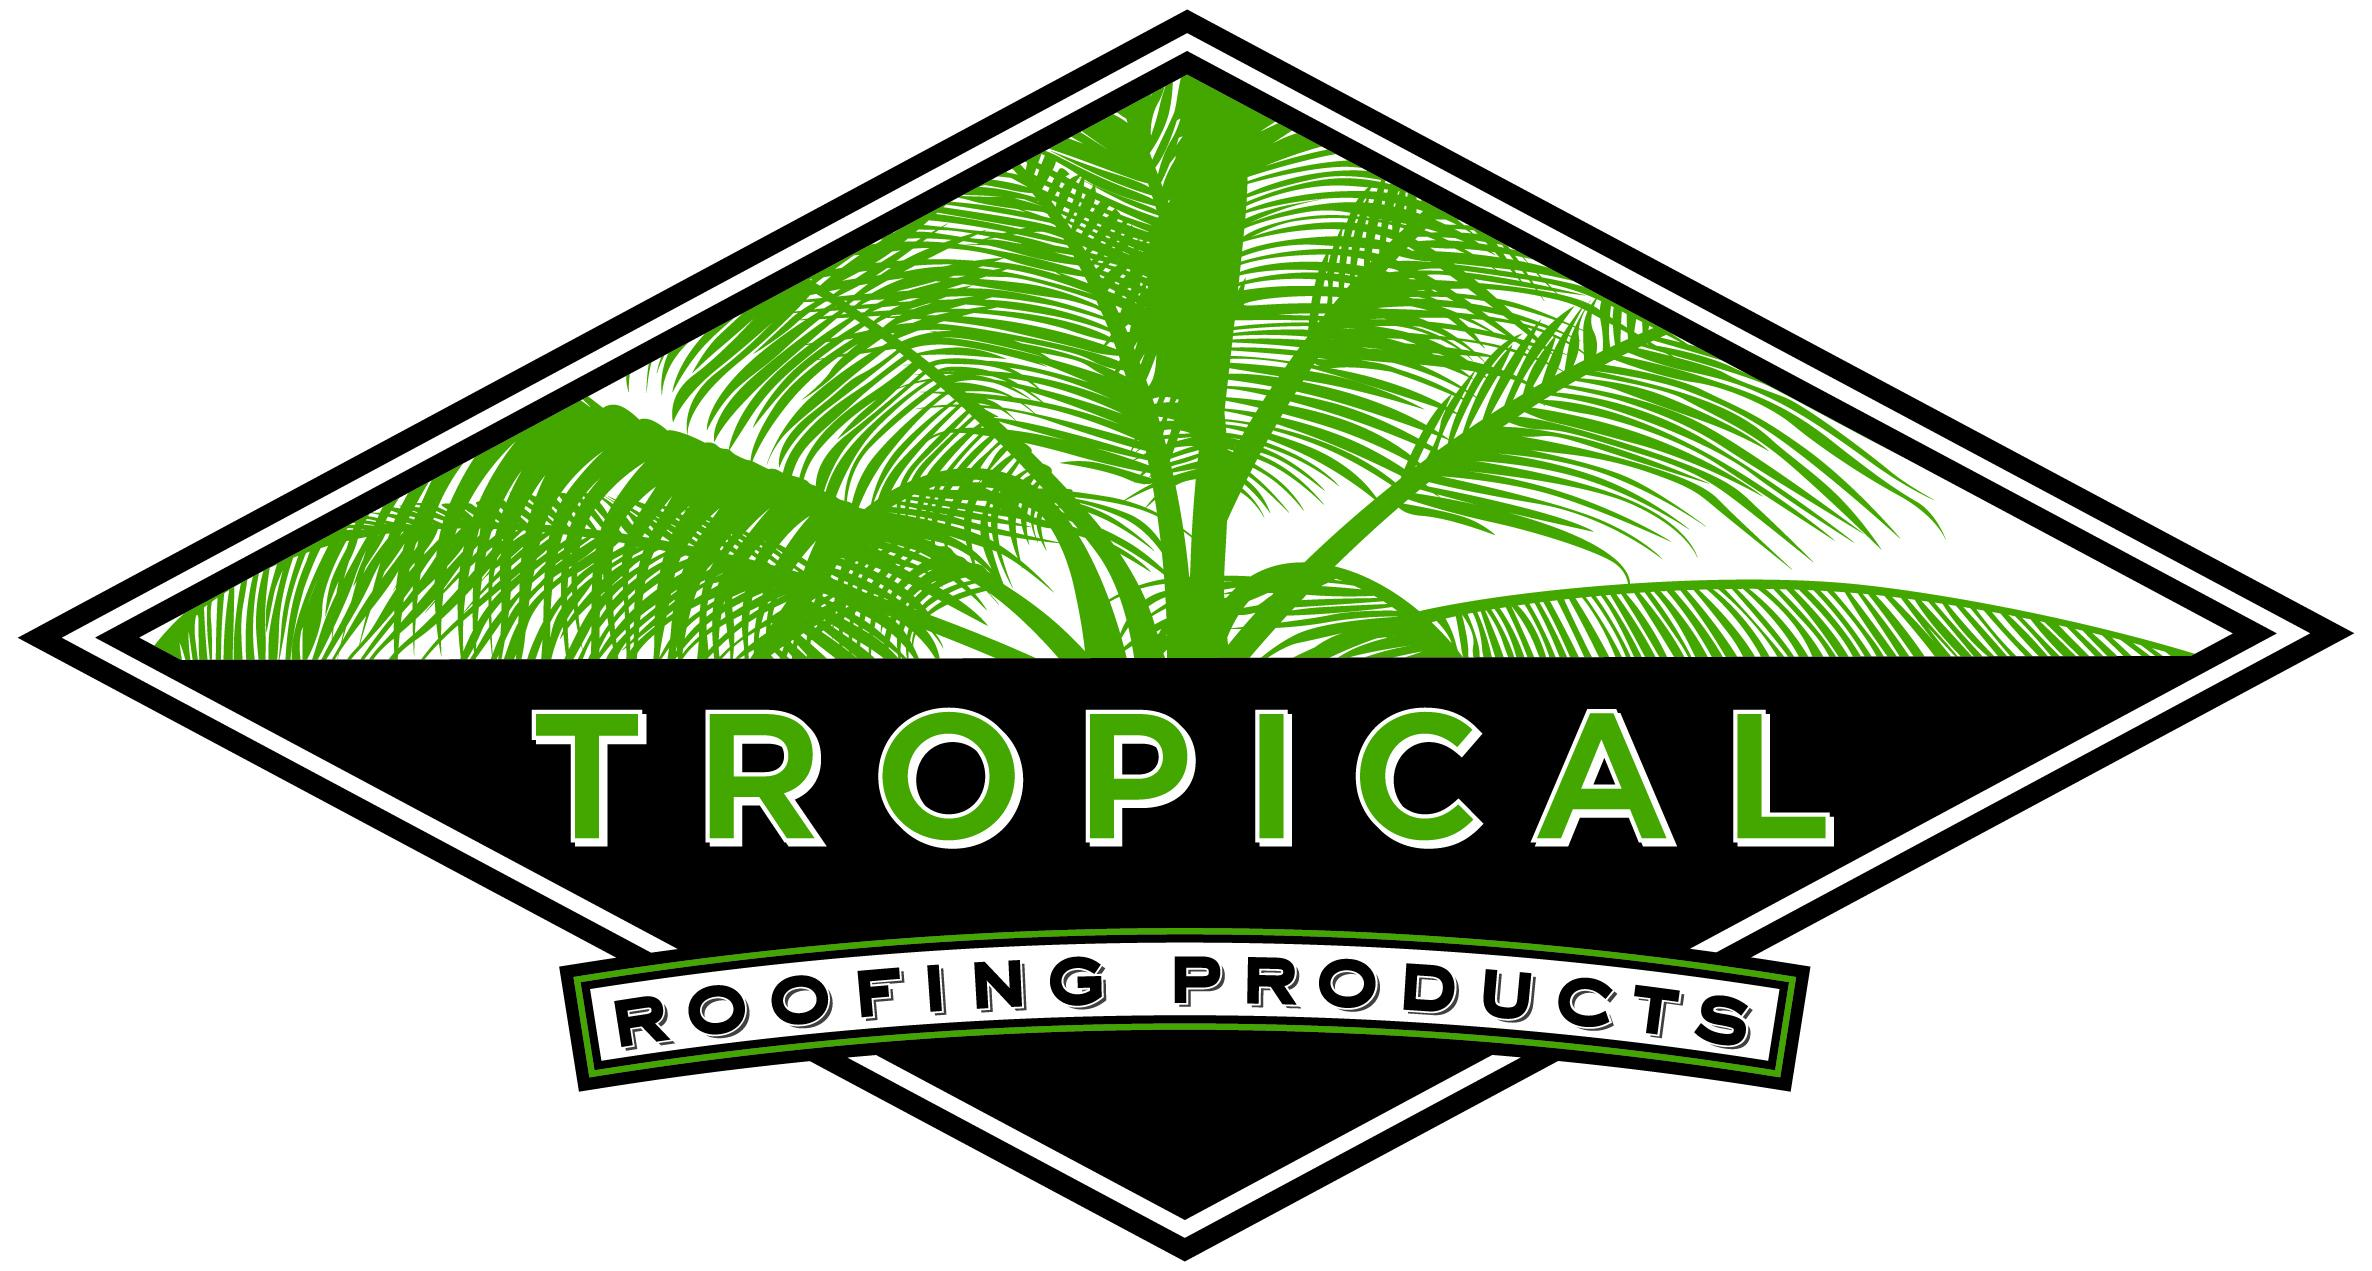 Tropical Roofing Products - Logo